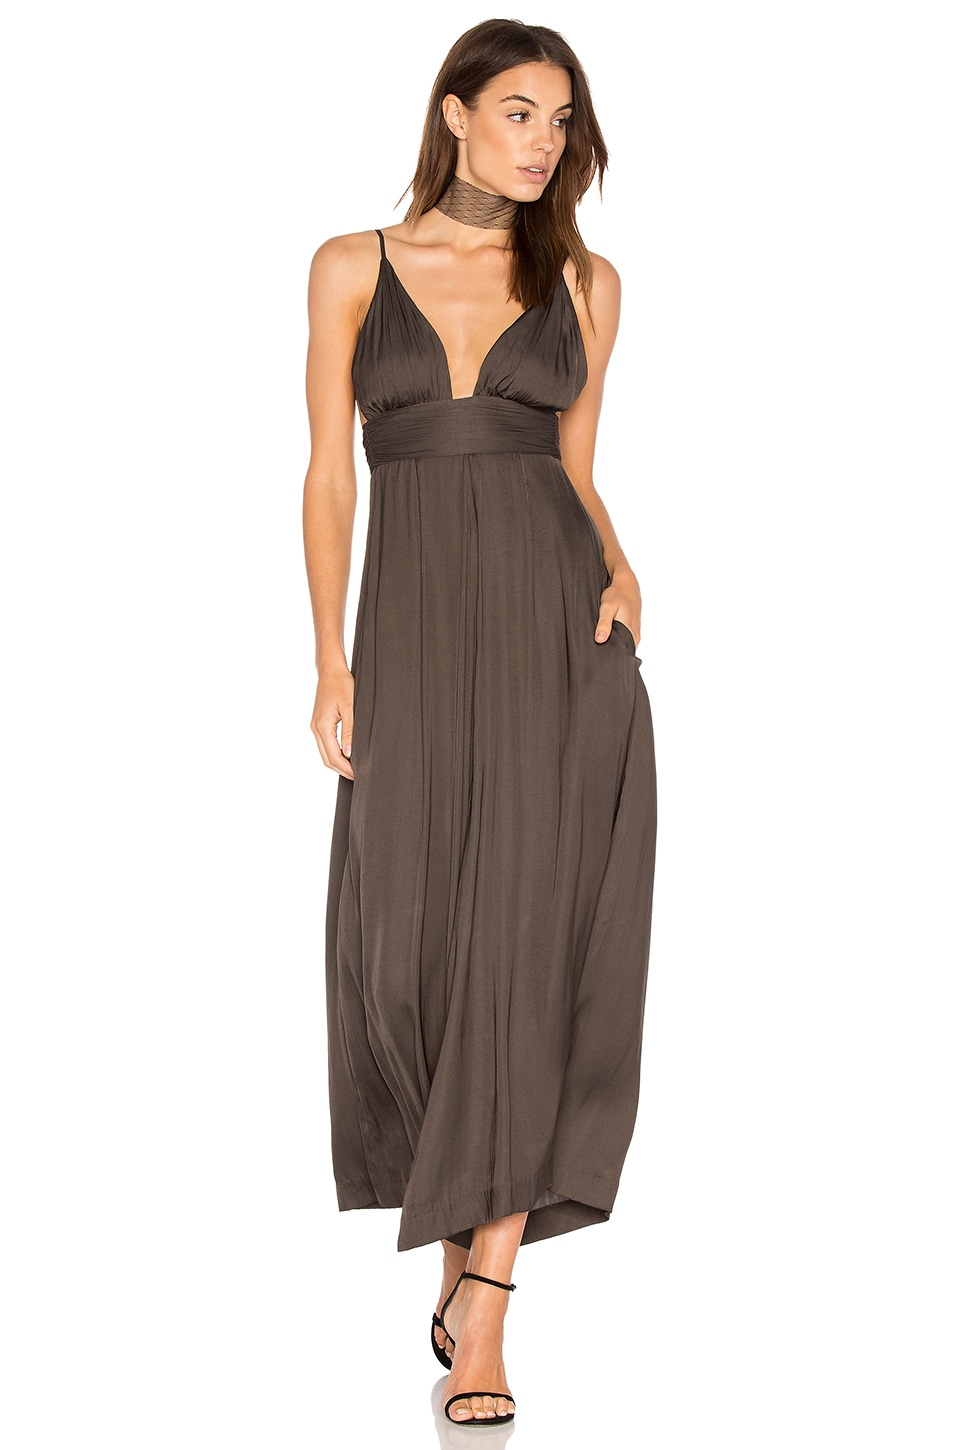 The Le Freak Jumpsuit by One Teaspoon